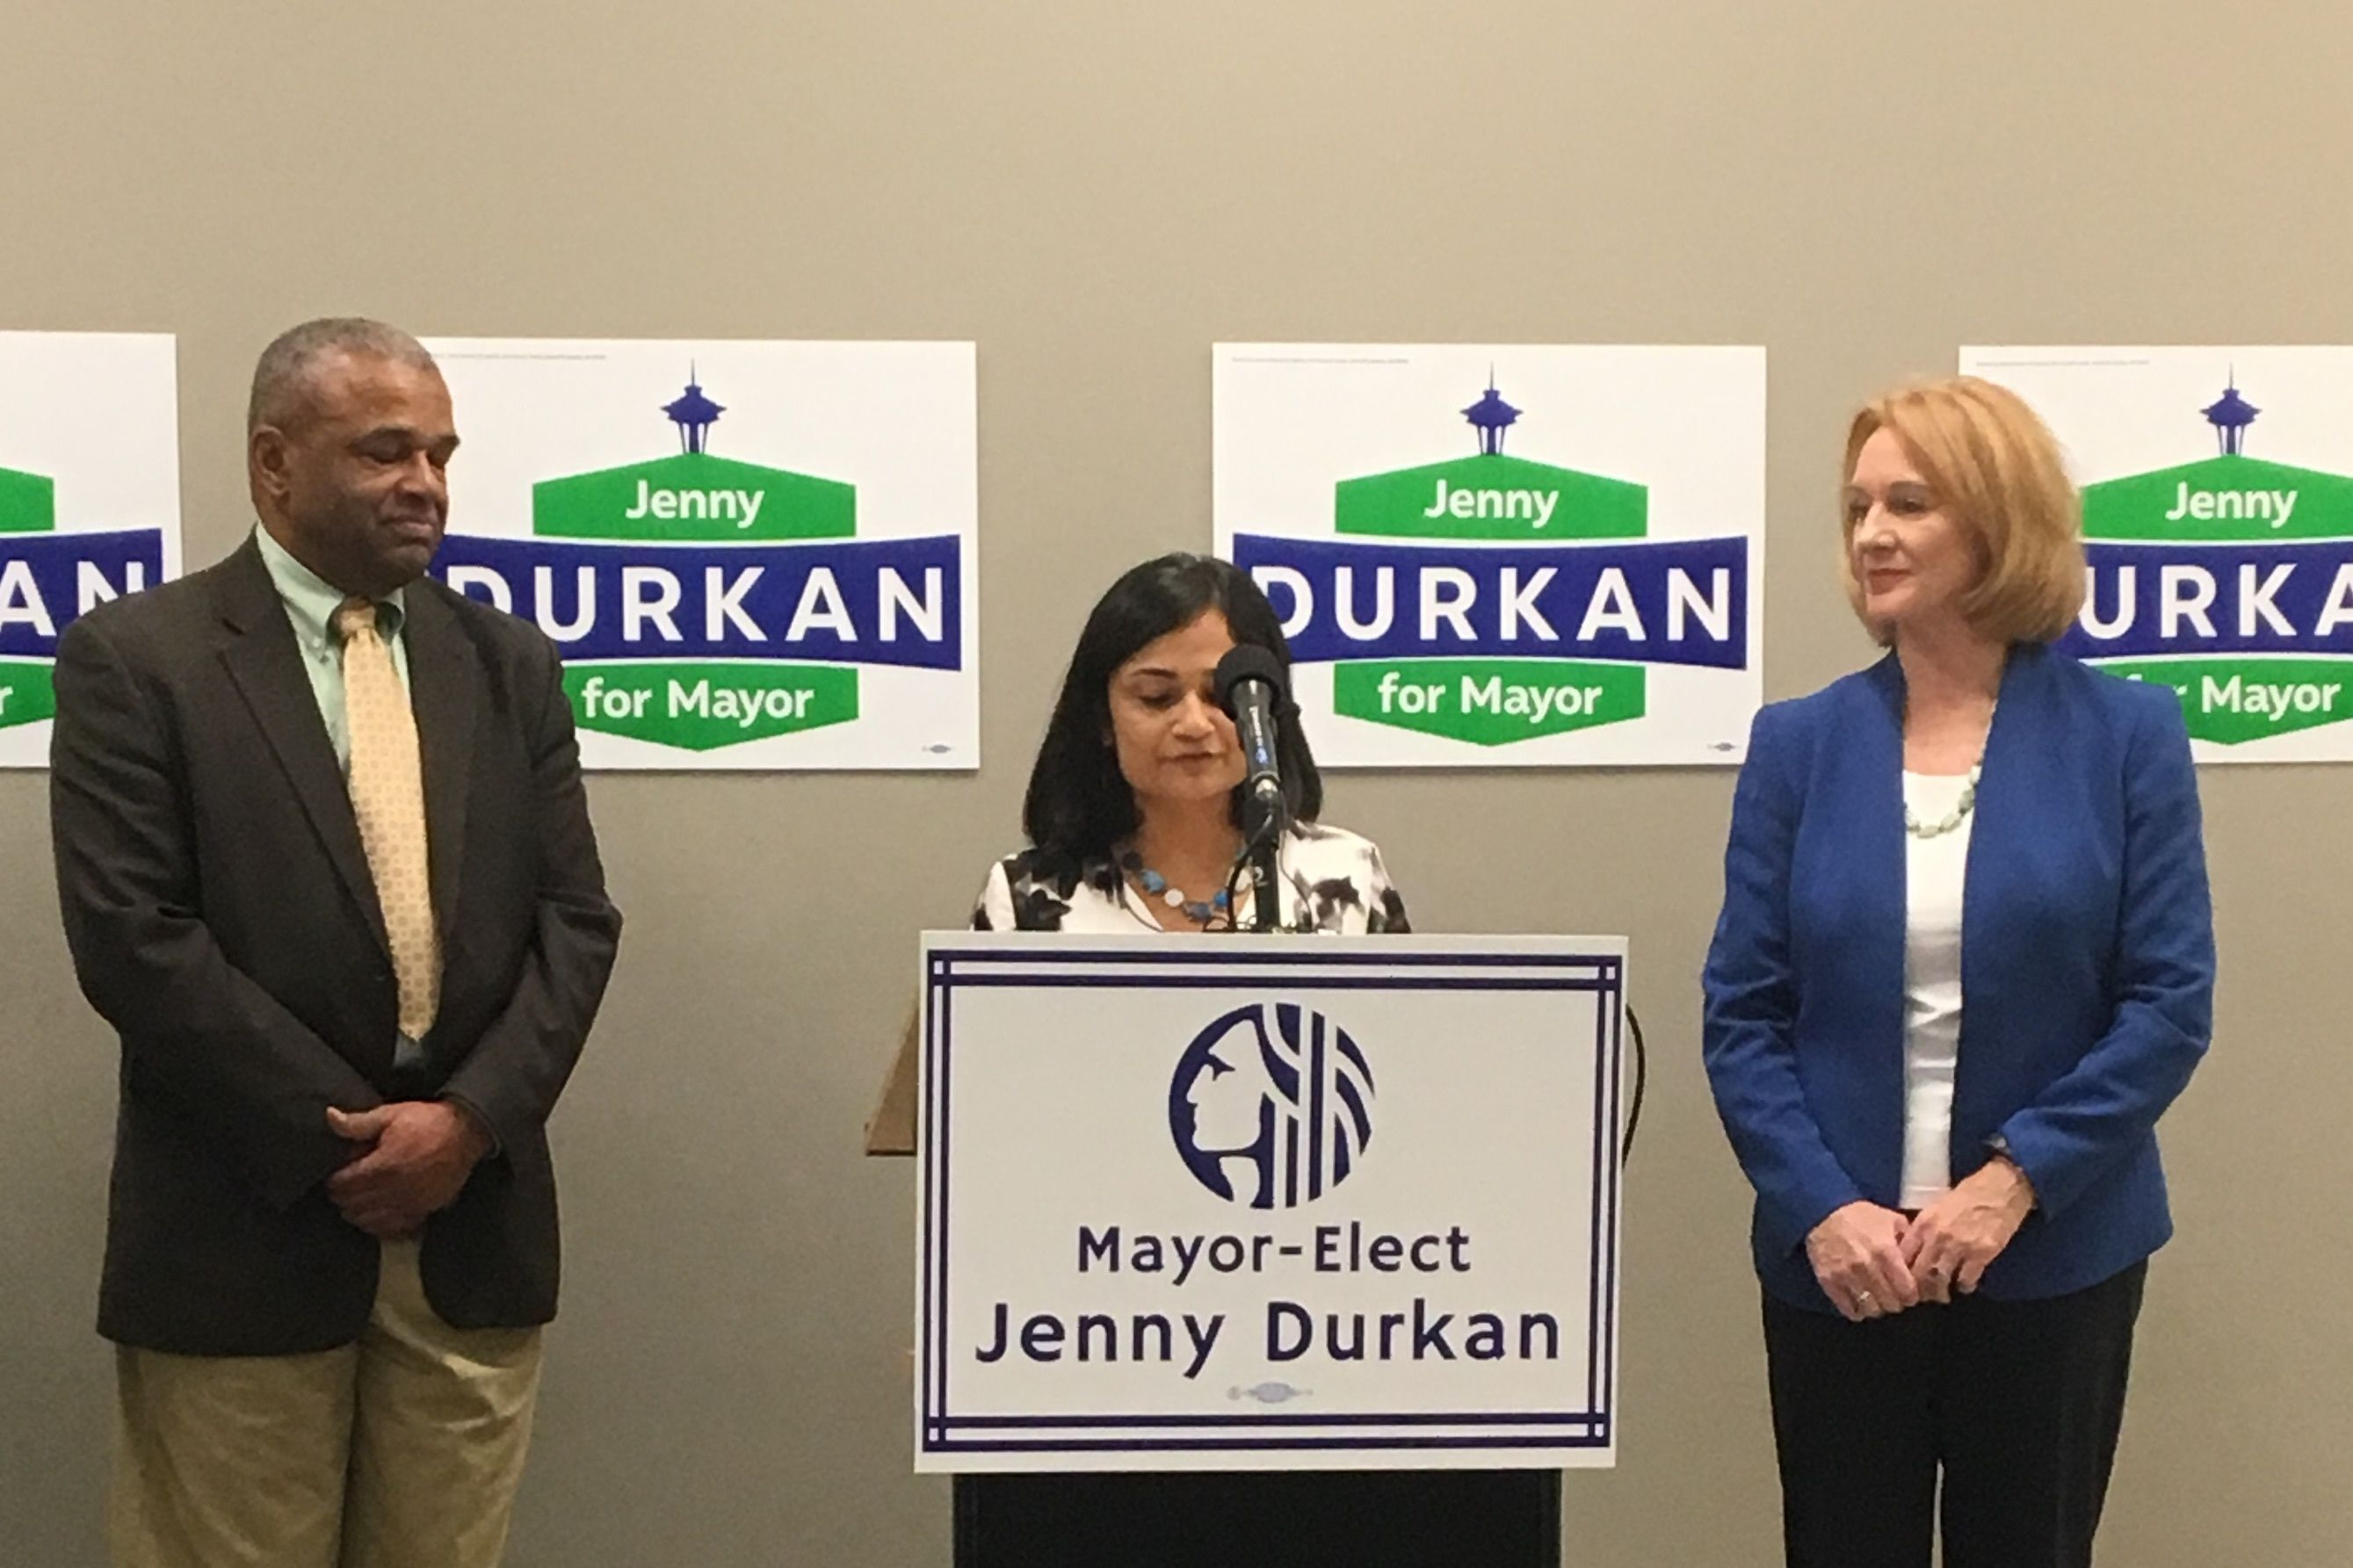 Shefali ranganathan durkan transition team 111017 fq6cdv